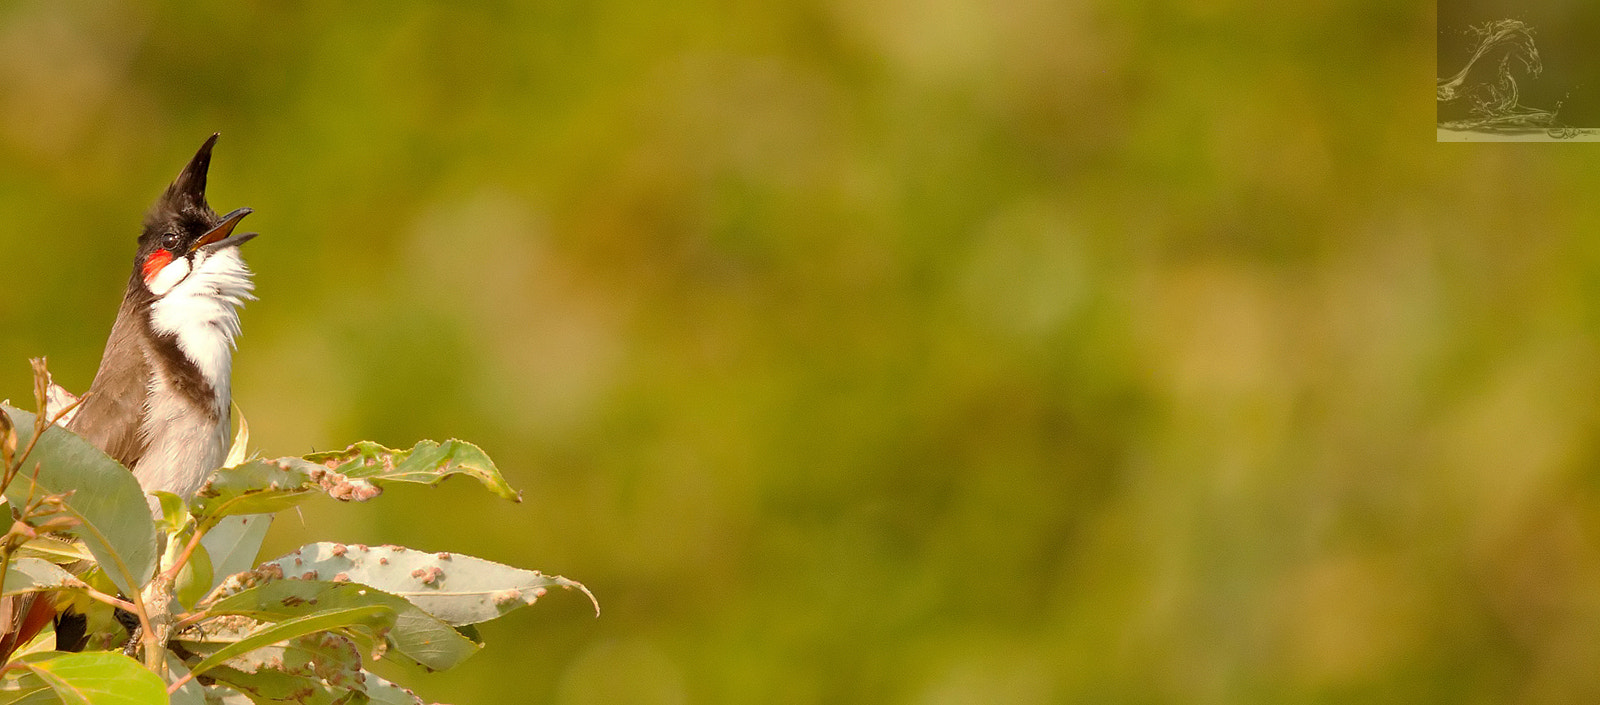 Photograph Red-whiskered Bulbul 01 by Kurien Yohannan on 500px